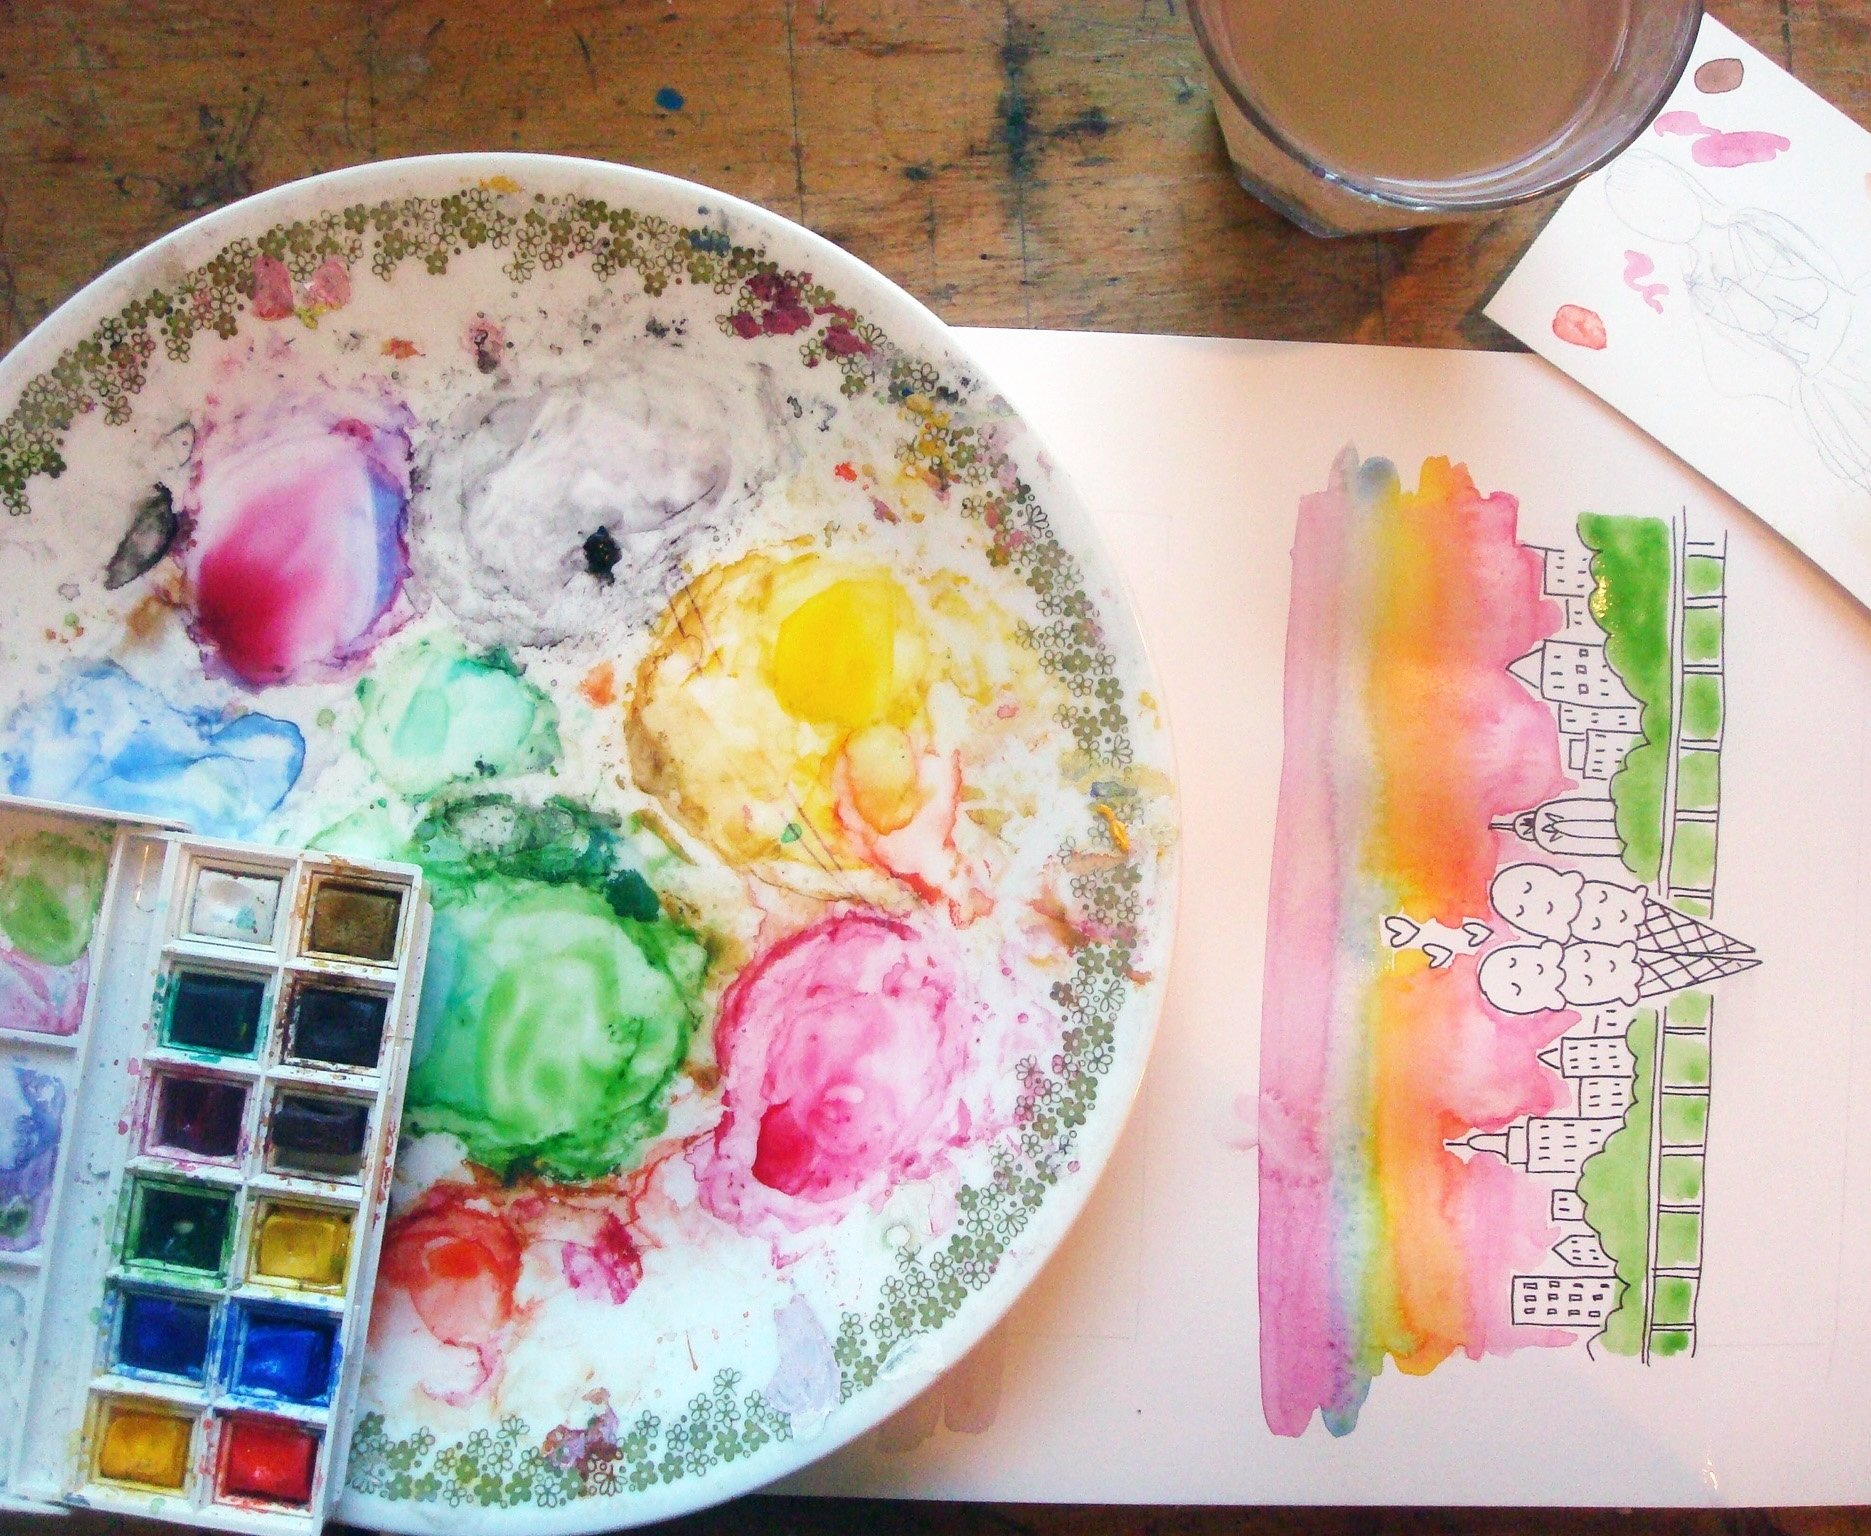 10 Most Recommended Watercolor Painting Ideas For Beginners easy watercolor ideas for any skill level